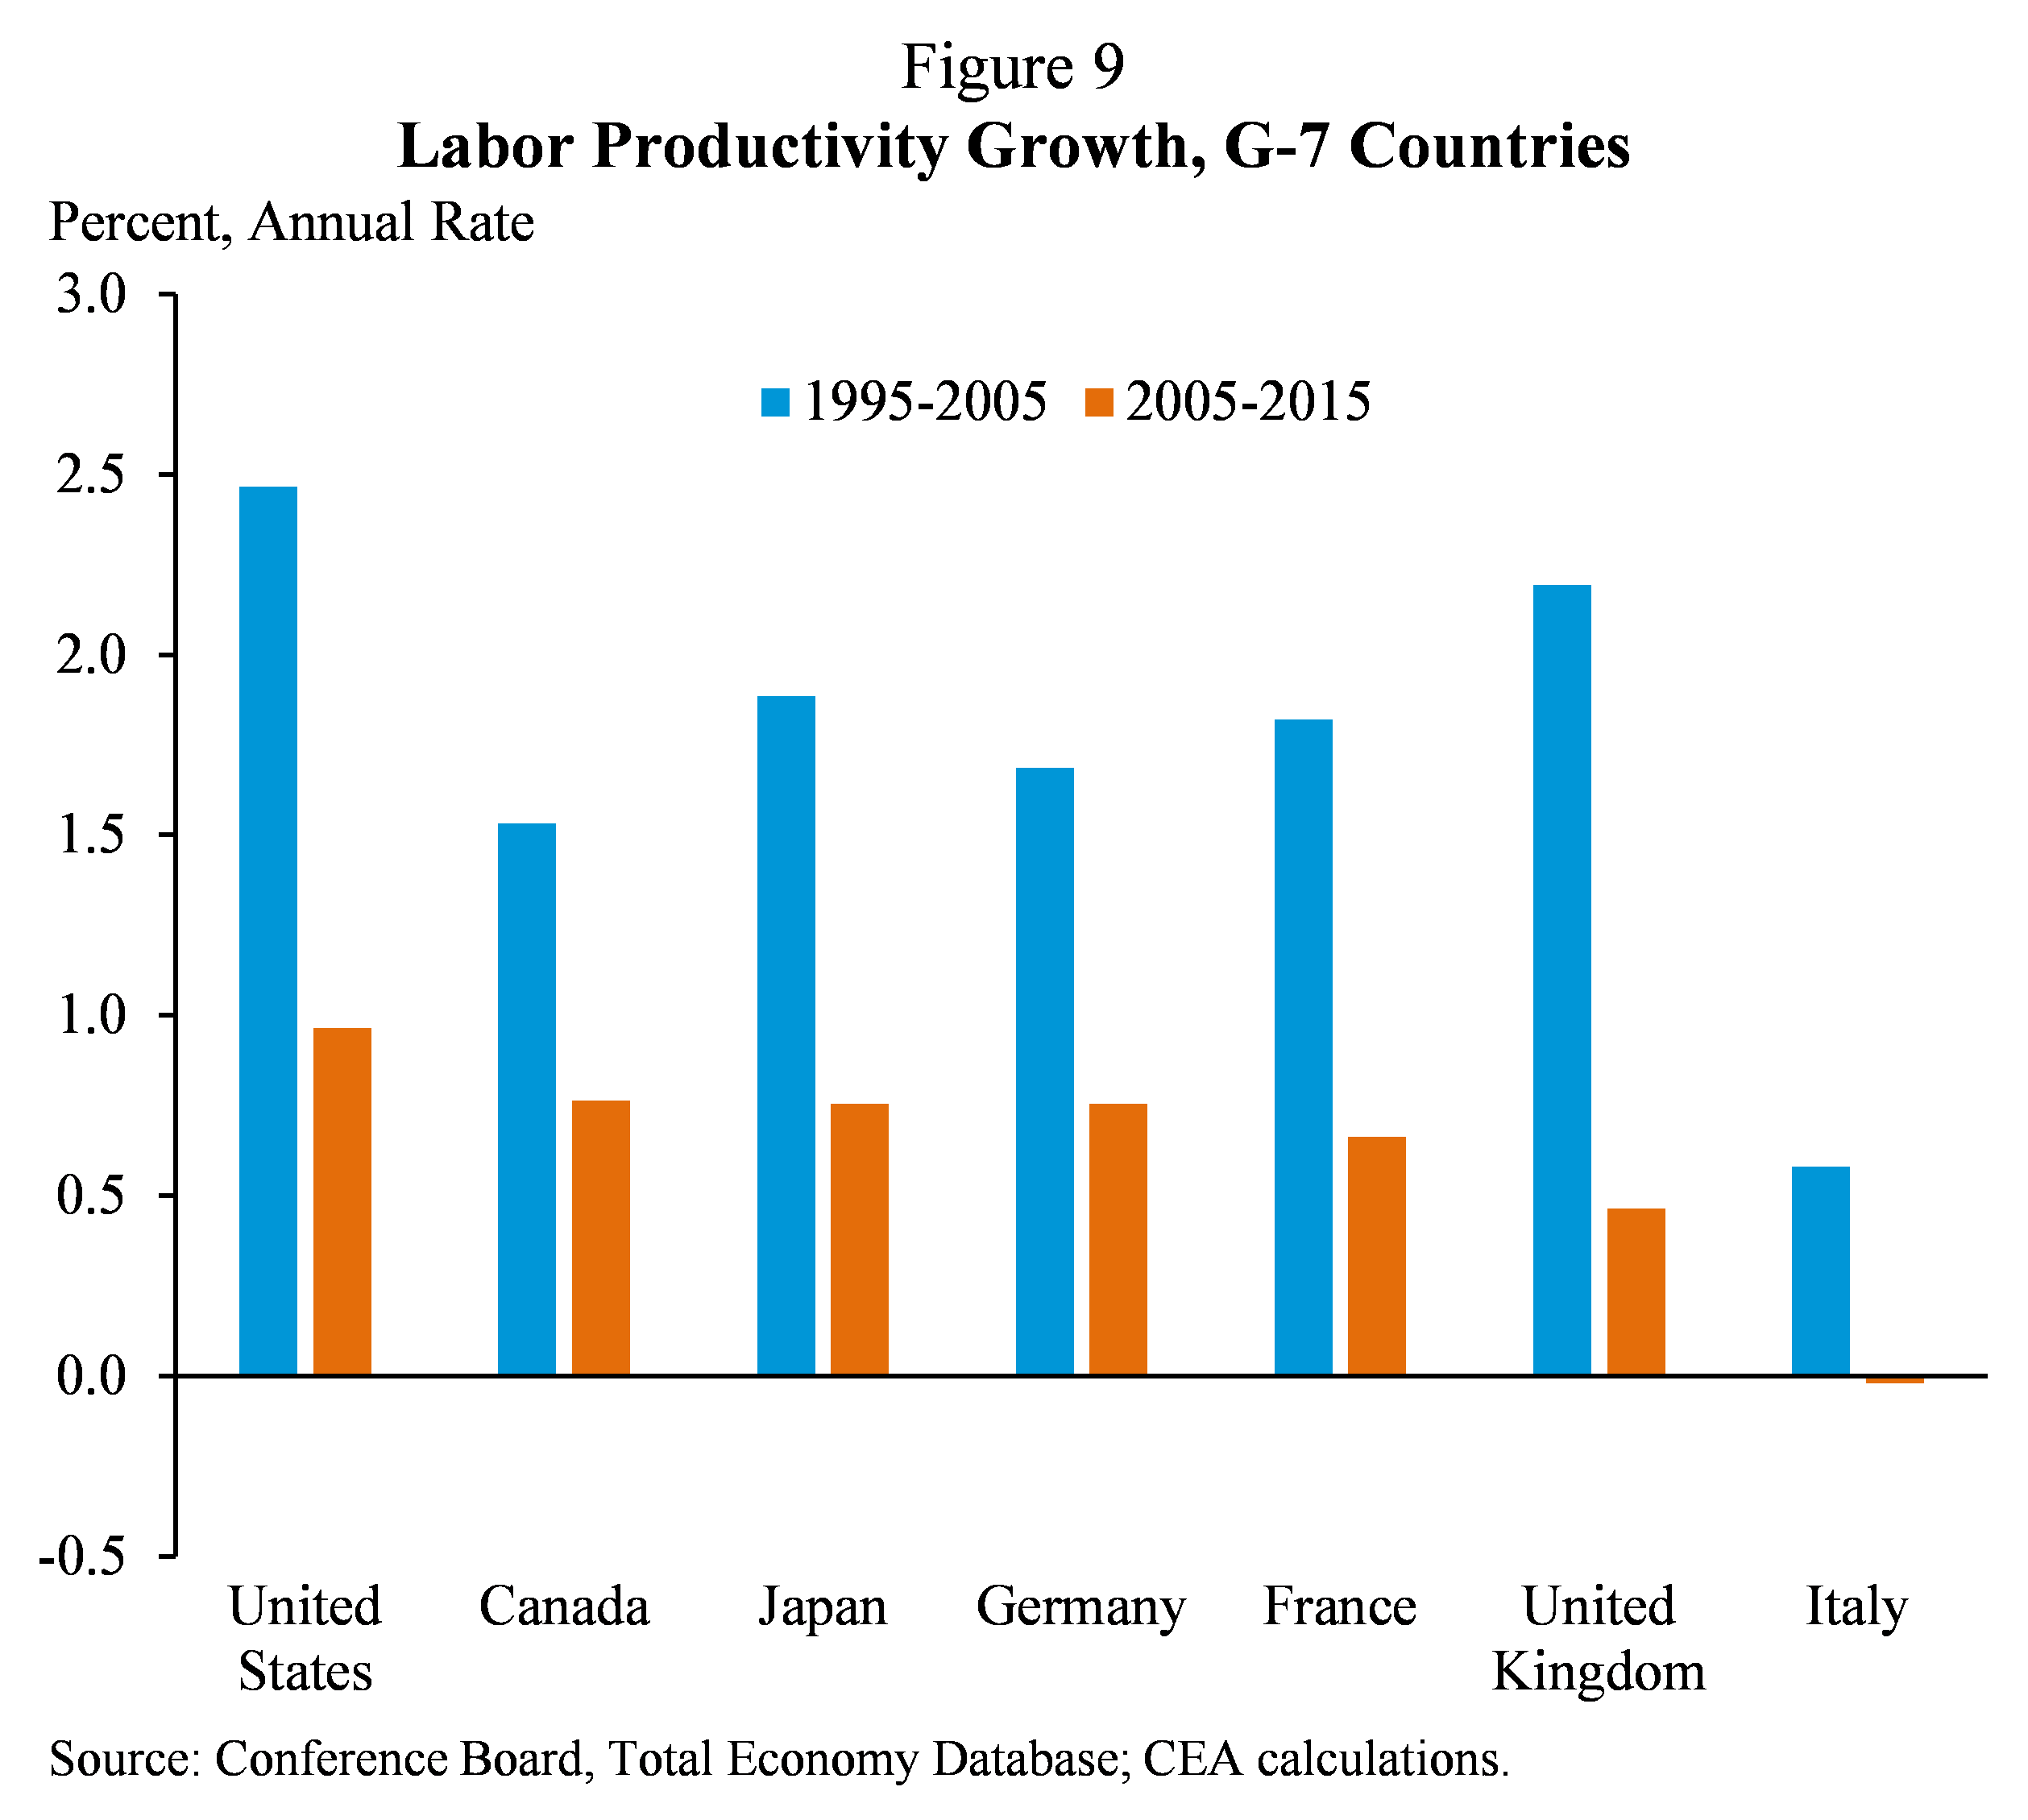 Figure 9.  Labor Productivity Growth, G-7 Countries